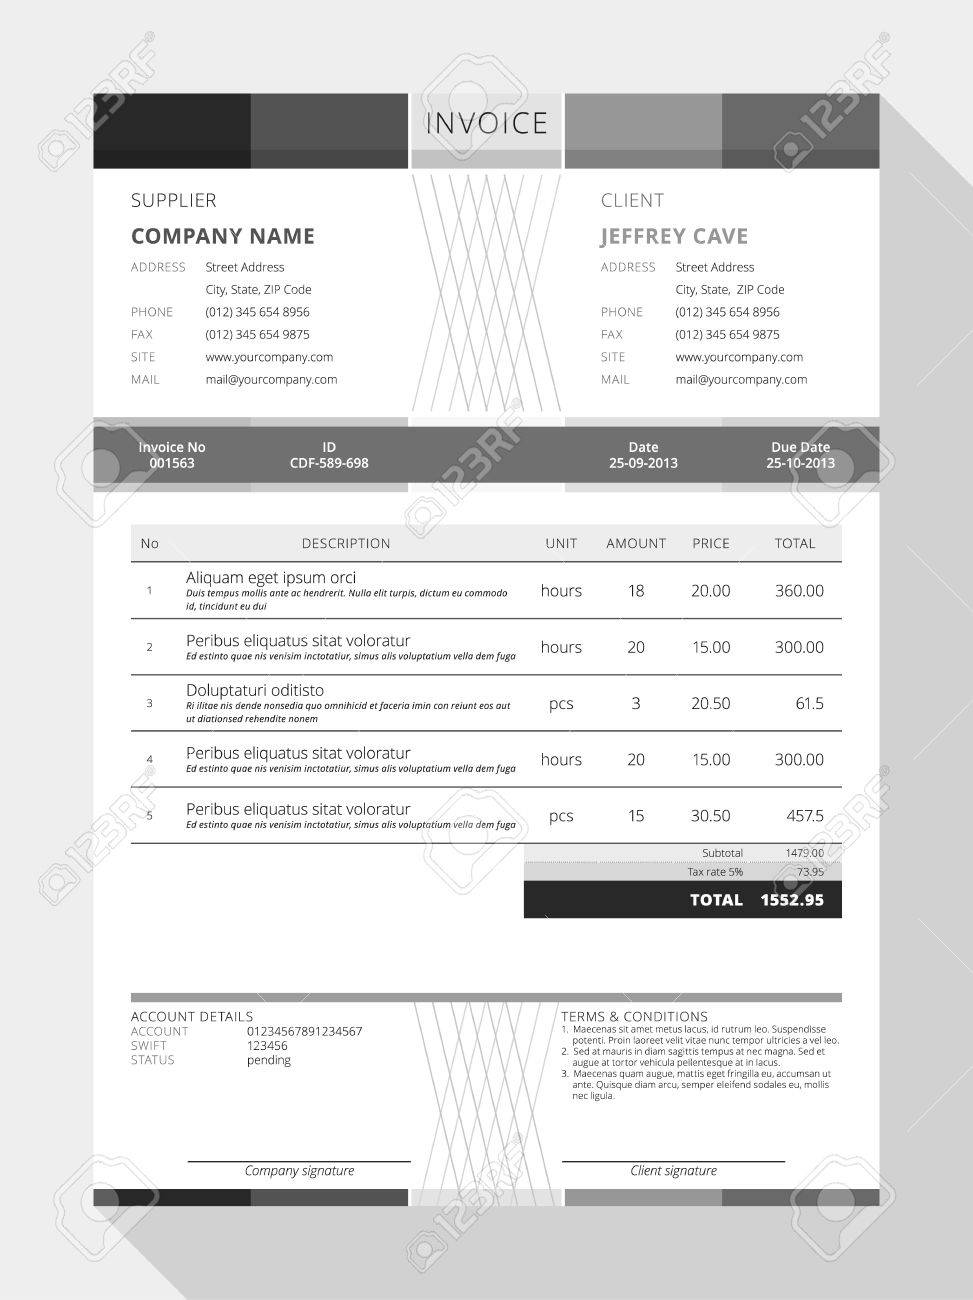 Maidofhonortoastus  Nice Design An Invoice  Professional Graphic Design Invoice  With Marvelous Vector Customizable Invoice Form Template Design Vector   Design An Invoice With Appealing Email Receipt Also Acknowledge Receipt In Addition Define Receipts And Receipts Scanner As Well As Most Partnerships Take In Receipts Amounting To Additionally Read Receipts Gmail From Happytomco With Maidofhonortoastus  Marvelous Design An Invoice  Professional Graphic Design Invoice  With Appealing Vector Customizable Invoice Form Template Design Vector   Design An Invoice And Nice Email Receipt Also Acknowledge Receipt In Addition Define Receipts From Happytomco